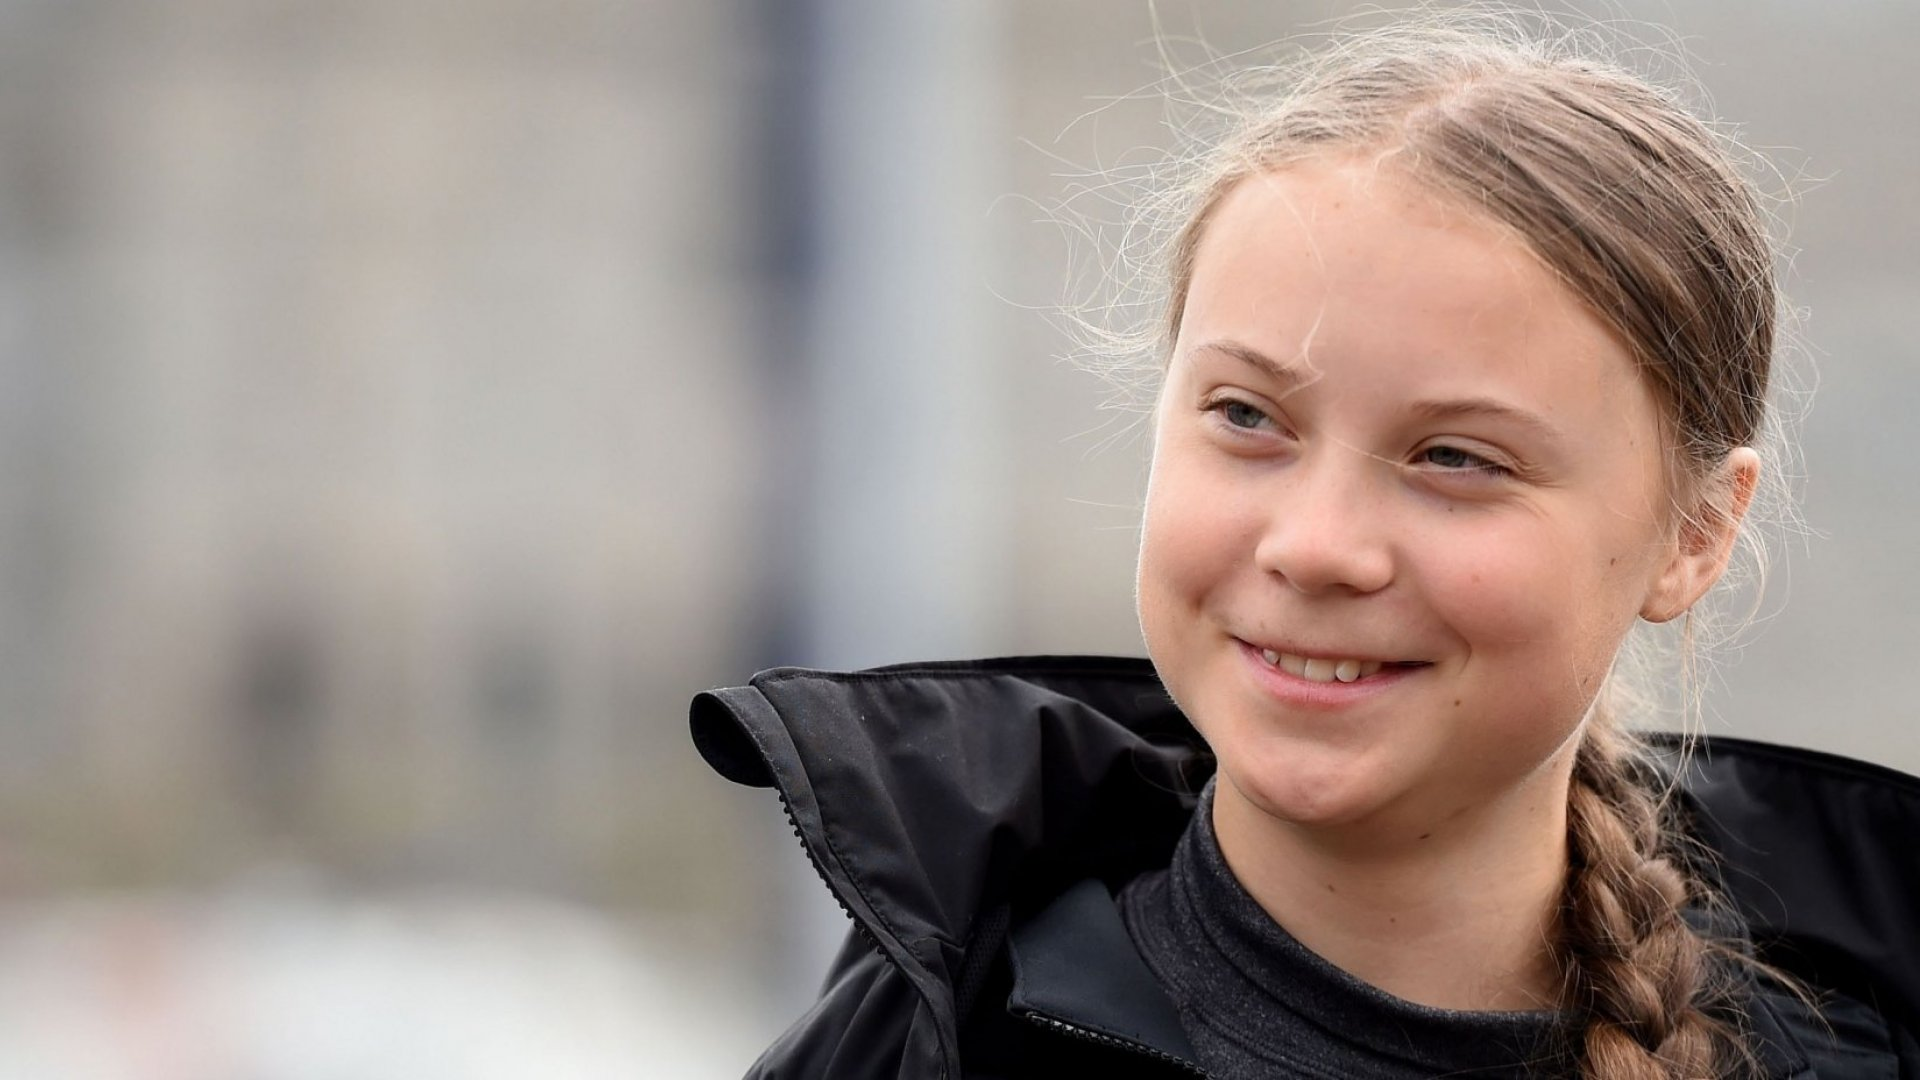 Environmental Activist Greta Thunberg Is Time's Person of the Year 2019